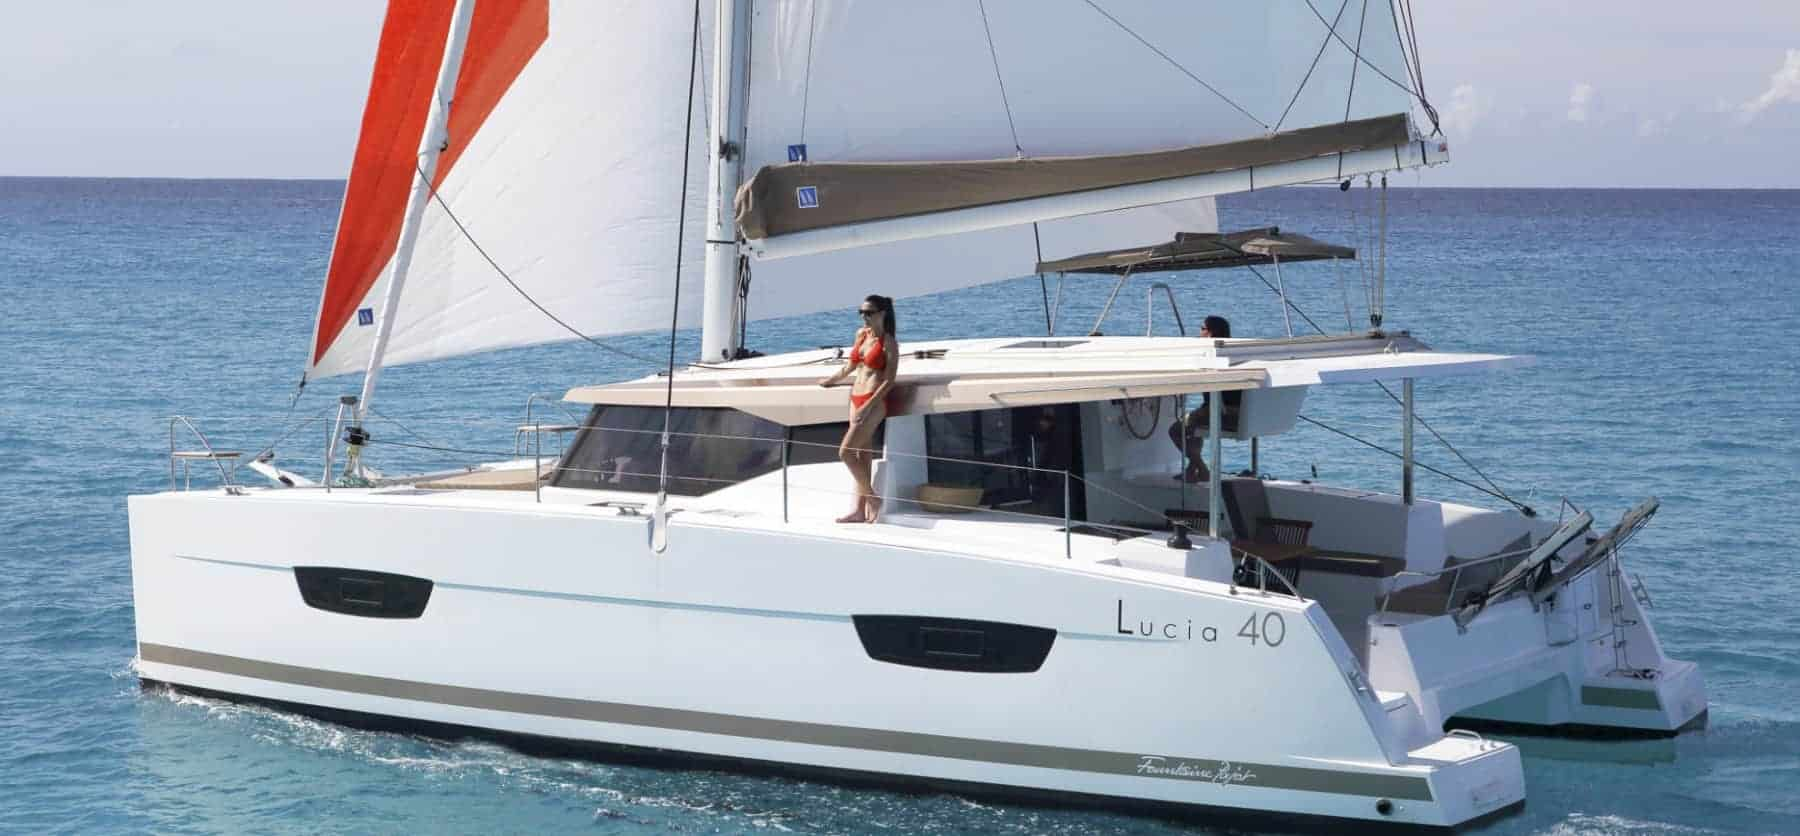 The very stylish Fountaine Pajot Lucia 40 sailing ahead while a woman in red bikini stands on deck looking out over the ocean